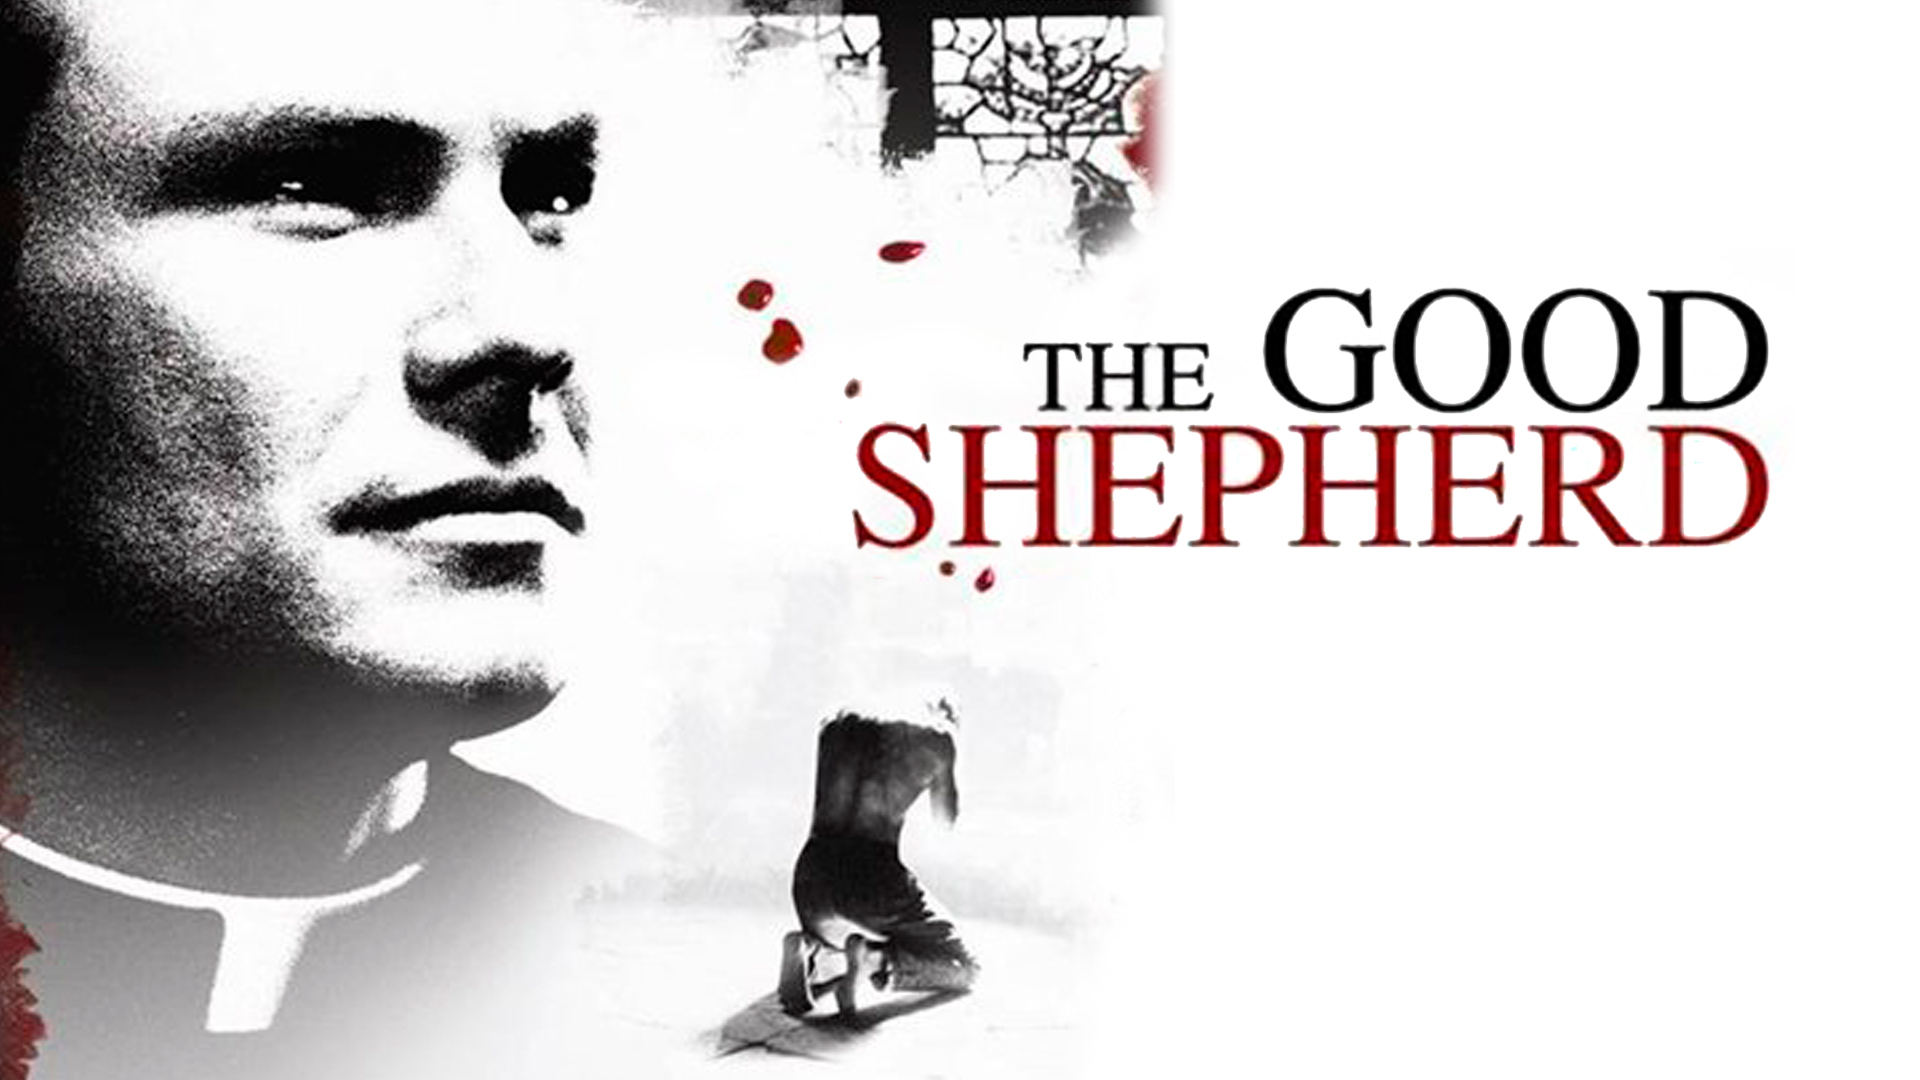 Good Shepherd, The (2004)